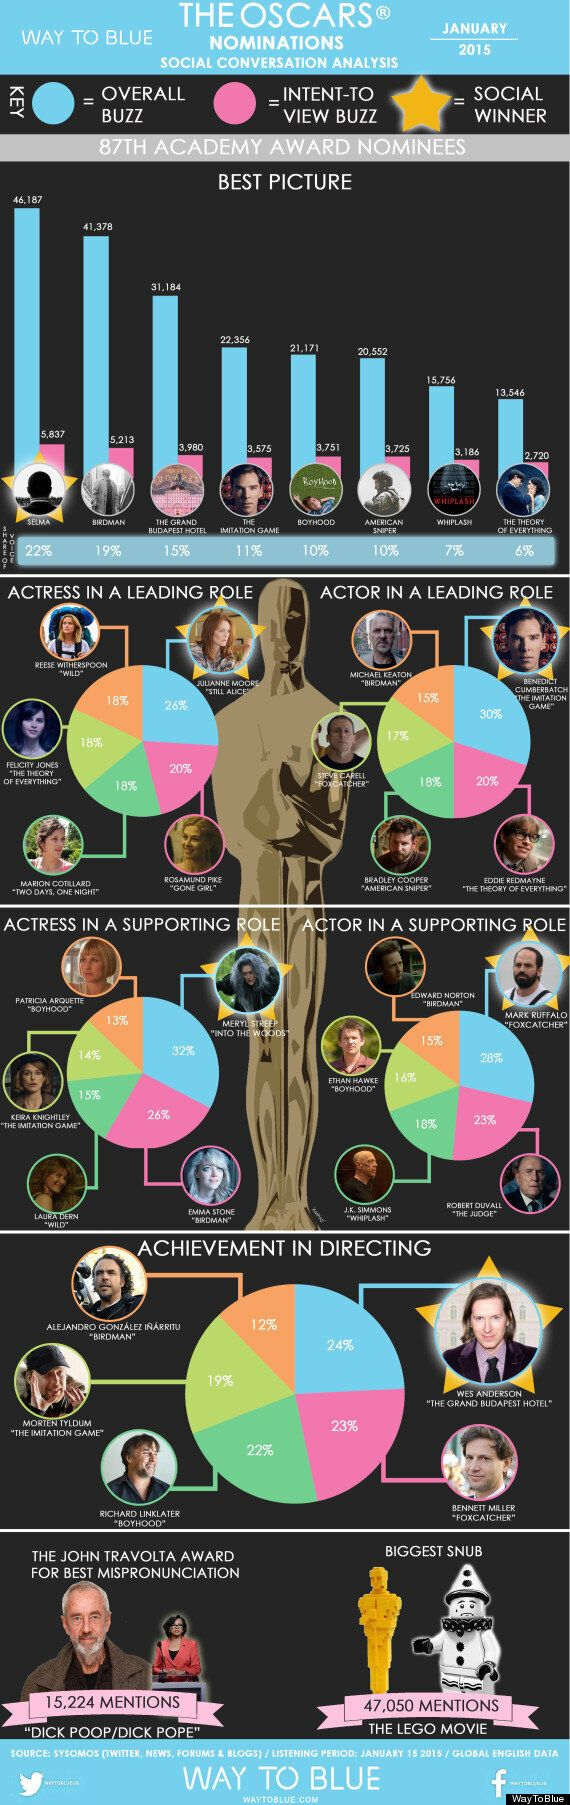 Oscars 2015 Predictions: 'Selma' A Firm Favourite With Fans For Oscar Glory, Benedict Cumberbatch Beating...